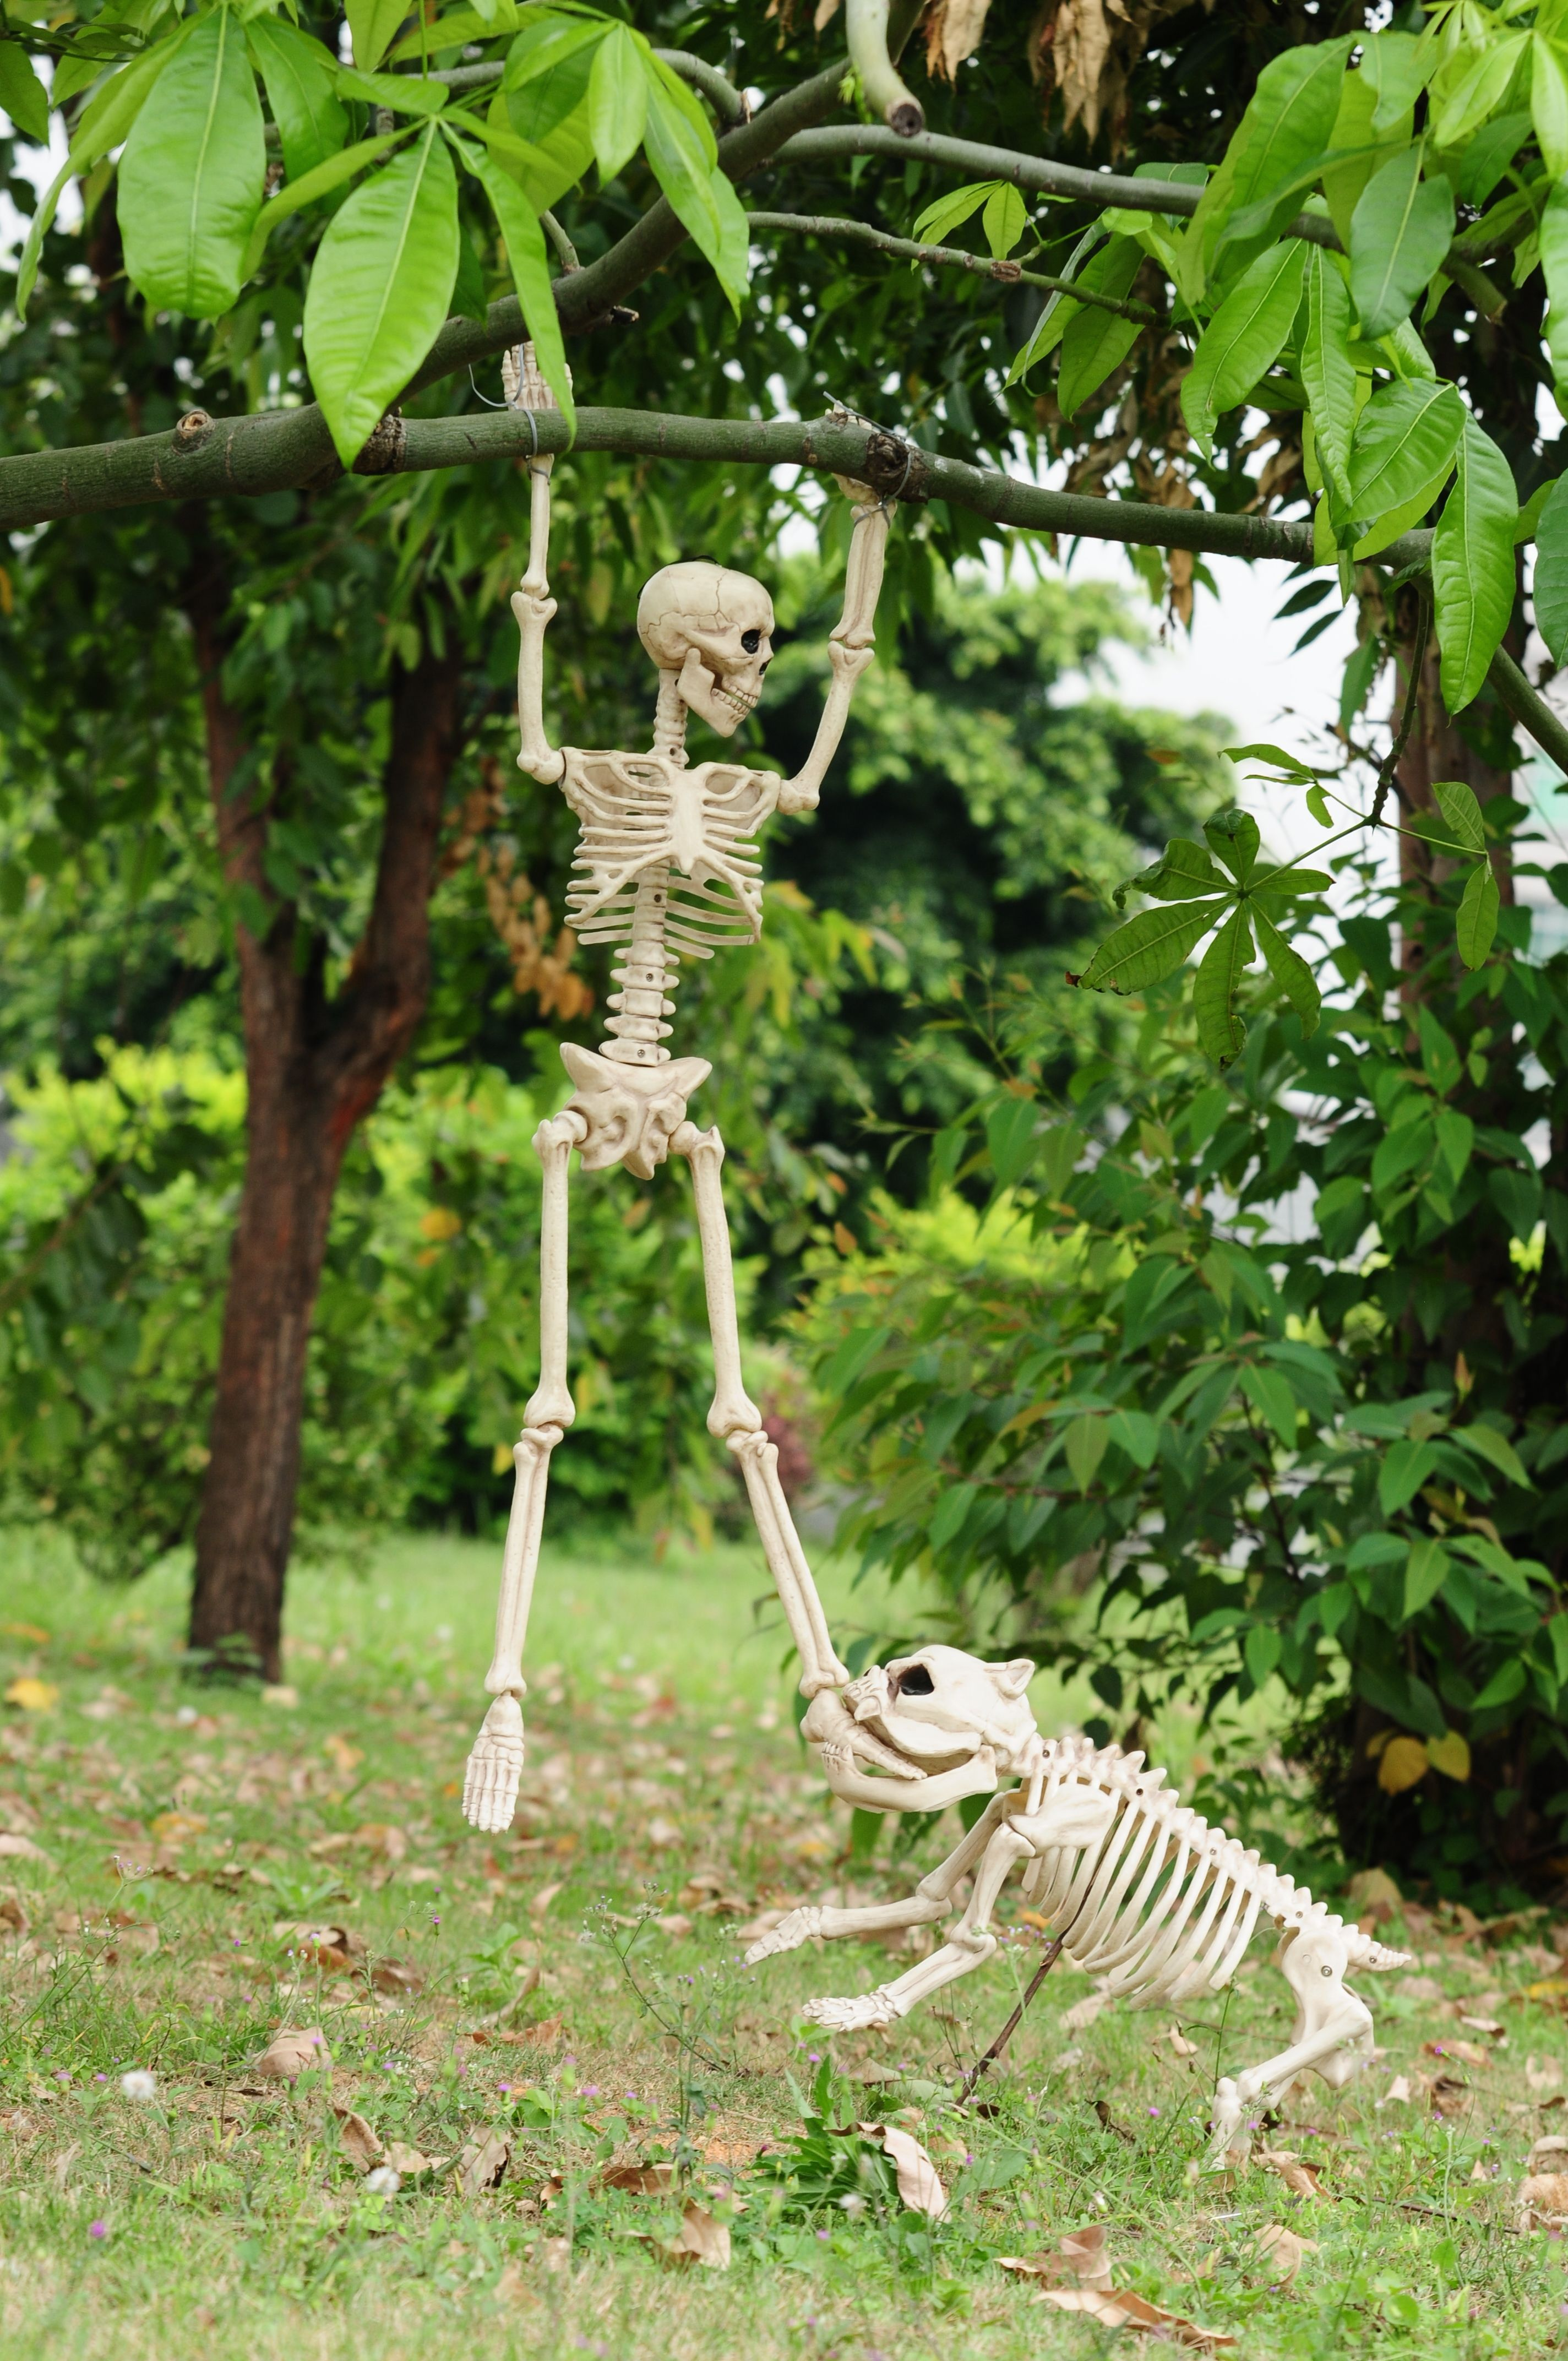 Crazy Bonez fun and games and decoration ideas